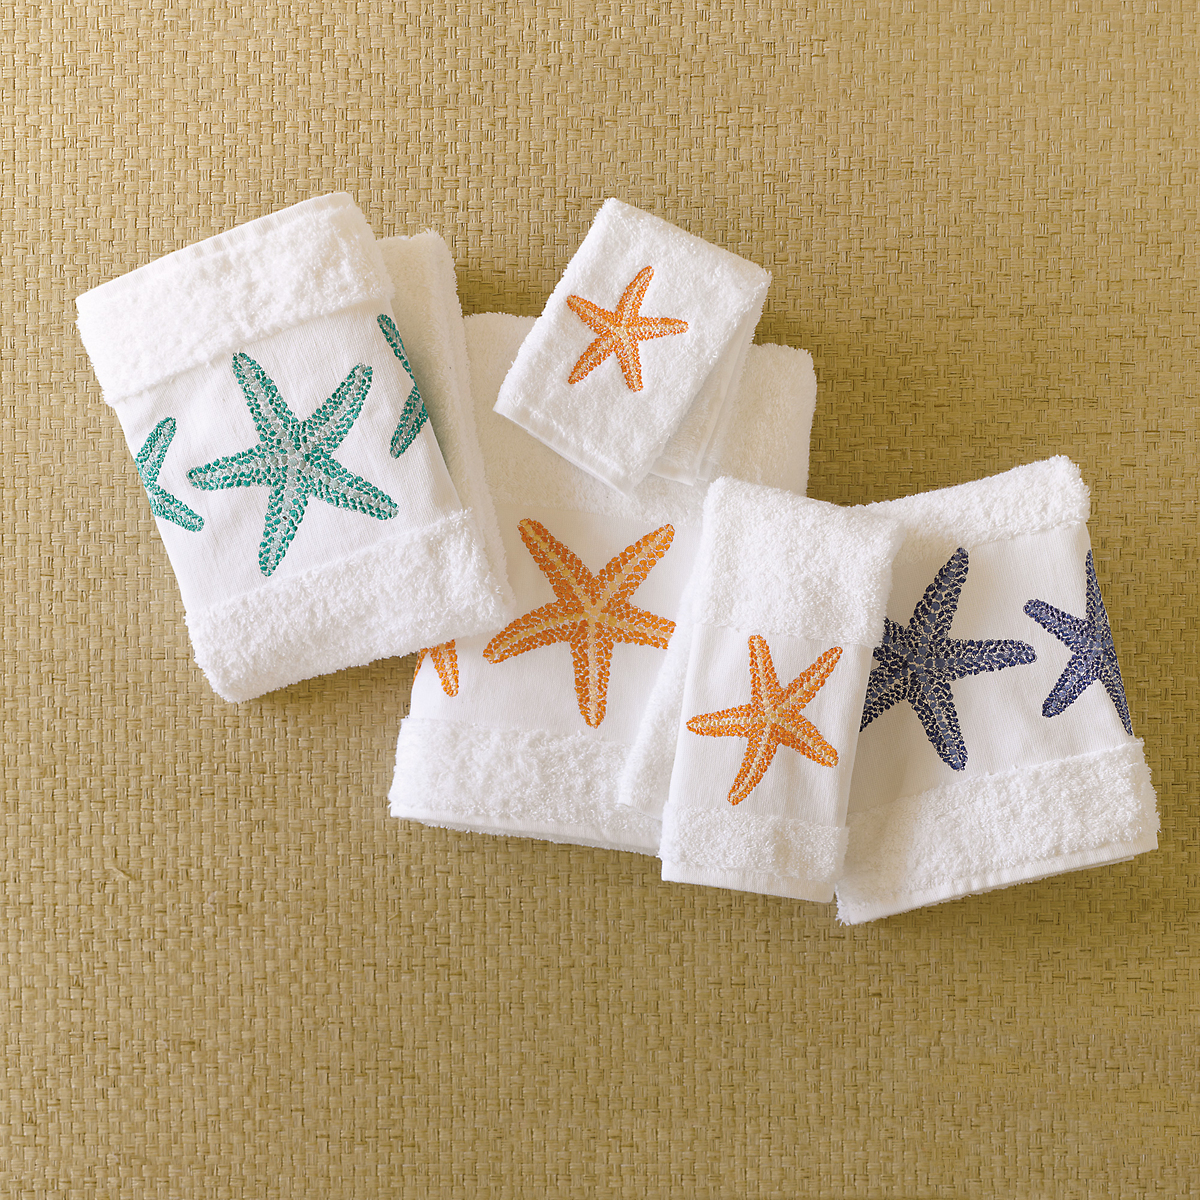 Embroidered Starfish Towels